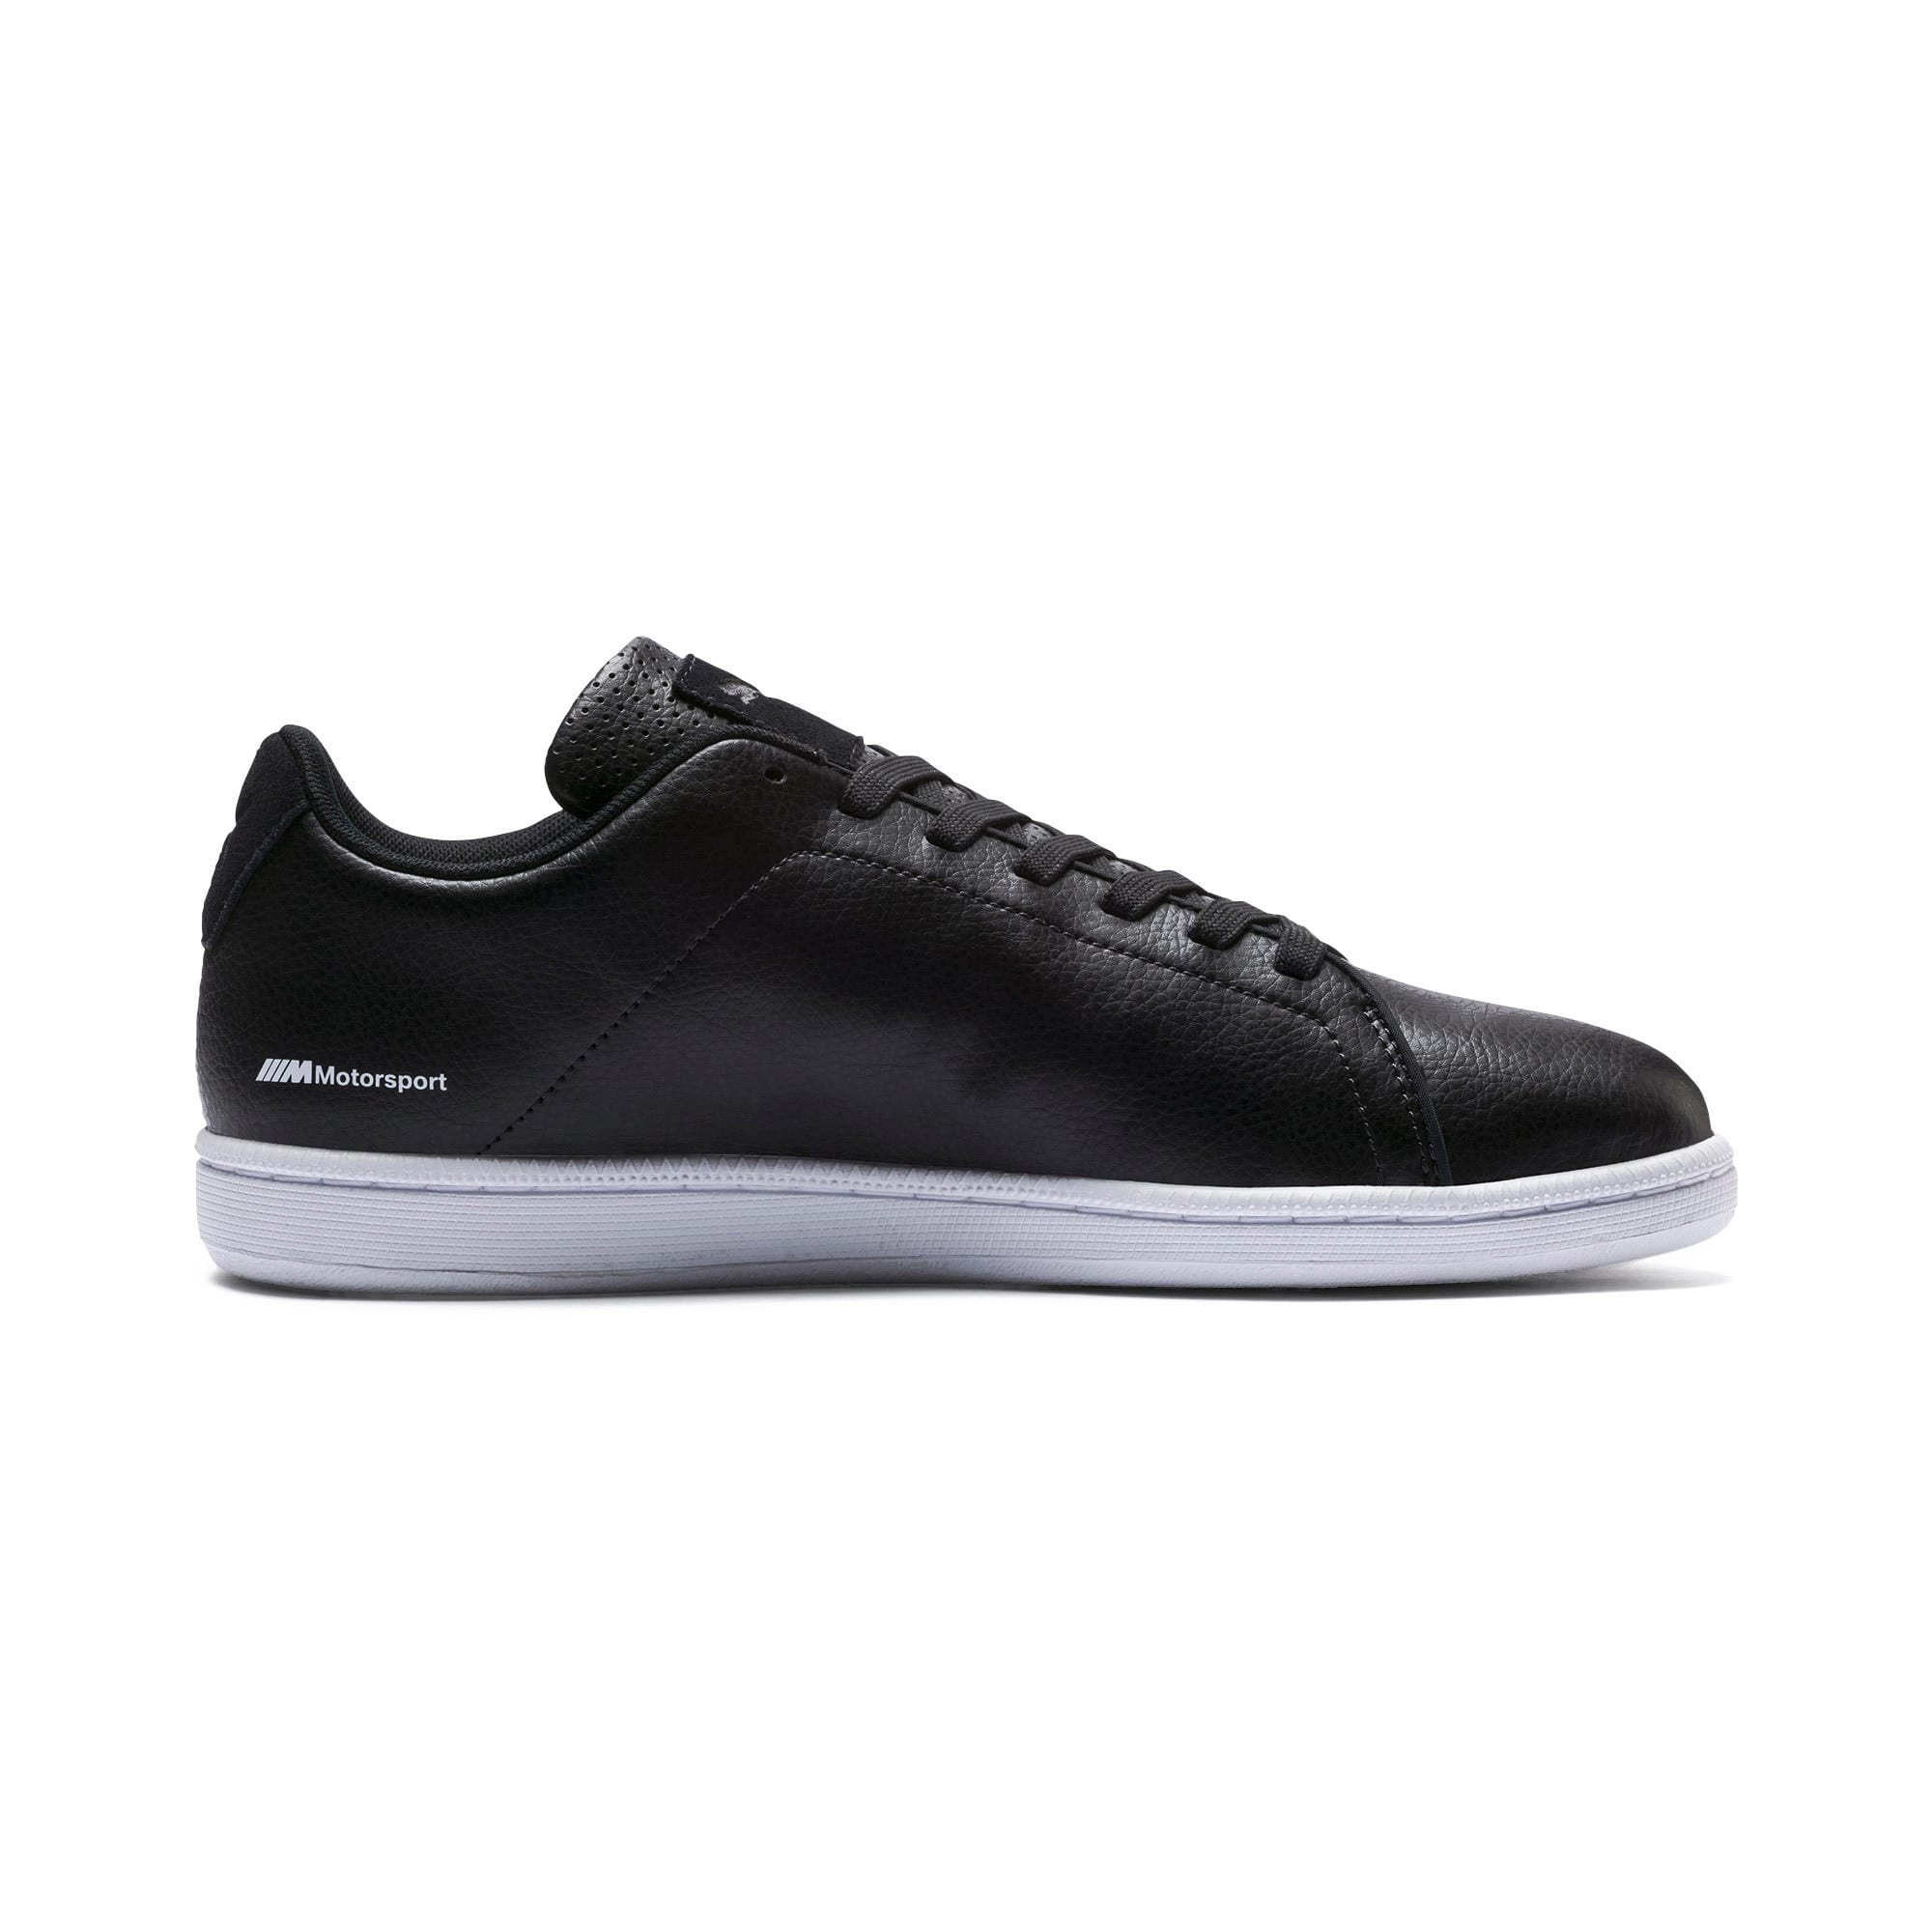 Thumbnail 3 of BMW M Motorsport Court Perf Trainers, Anthracite-Puma White, medium-IND